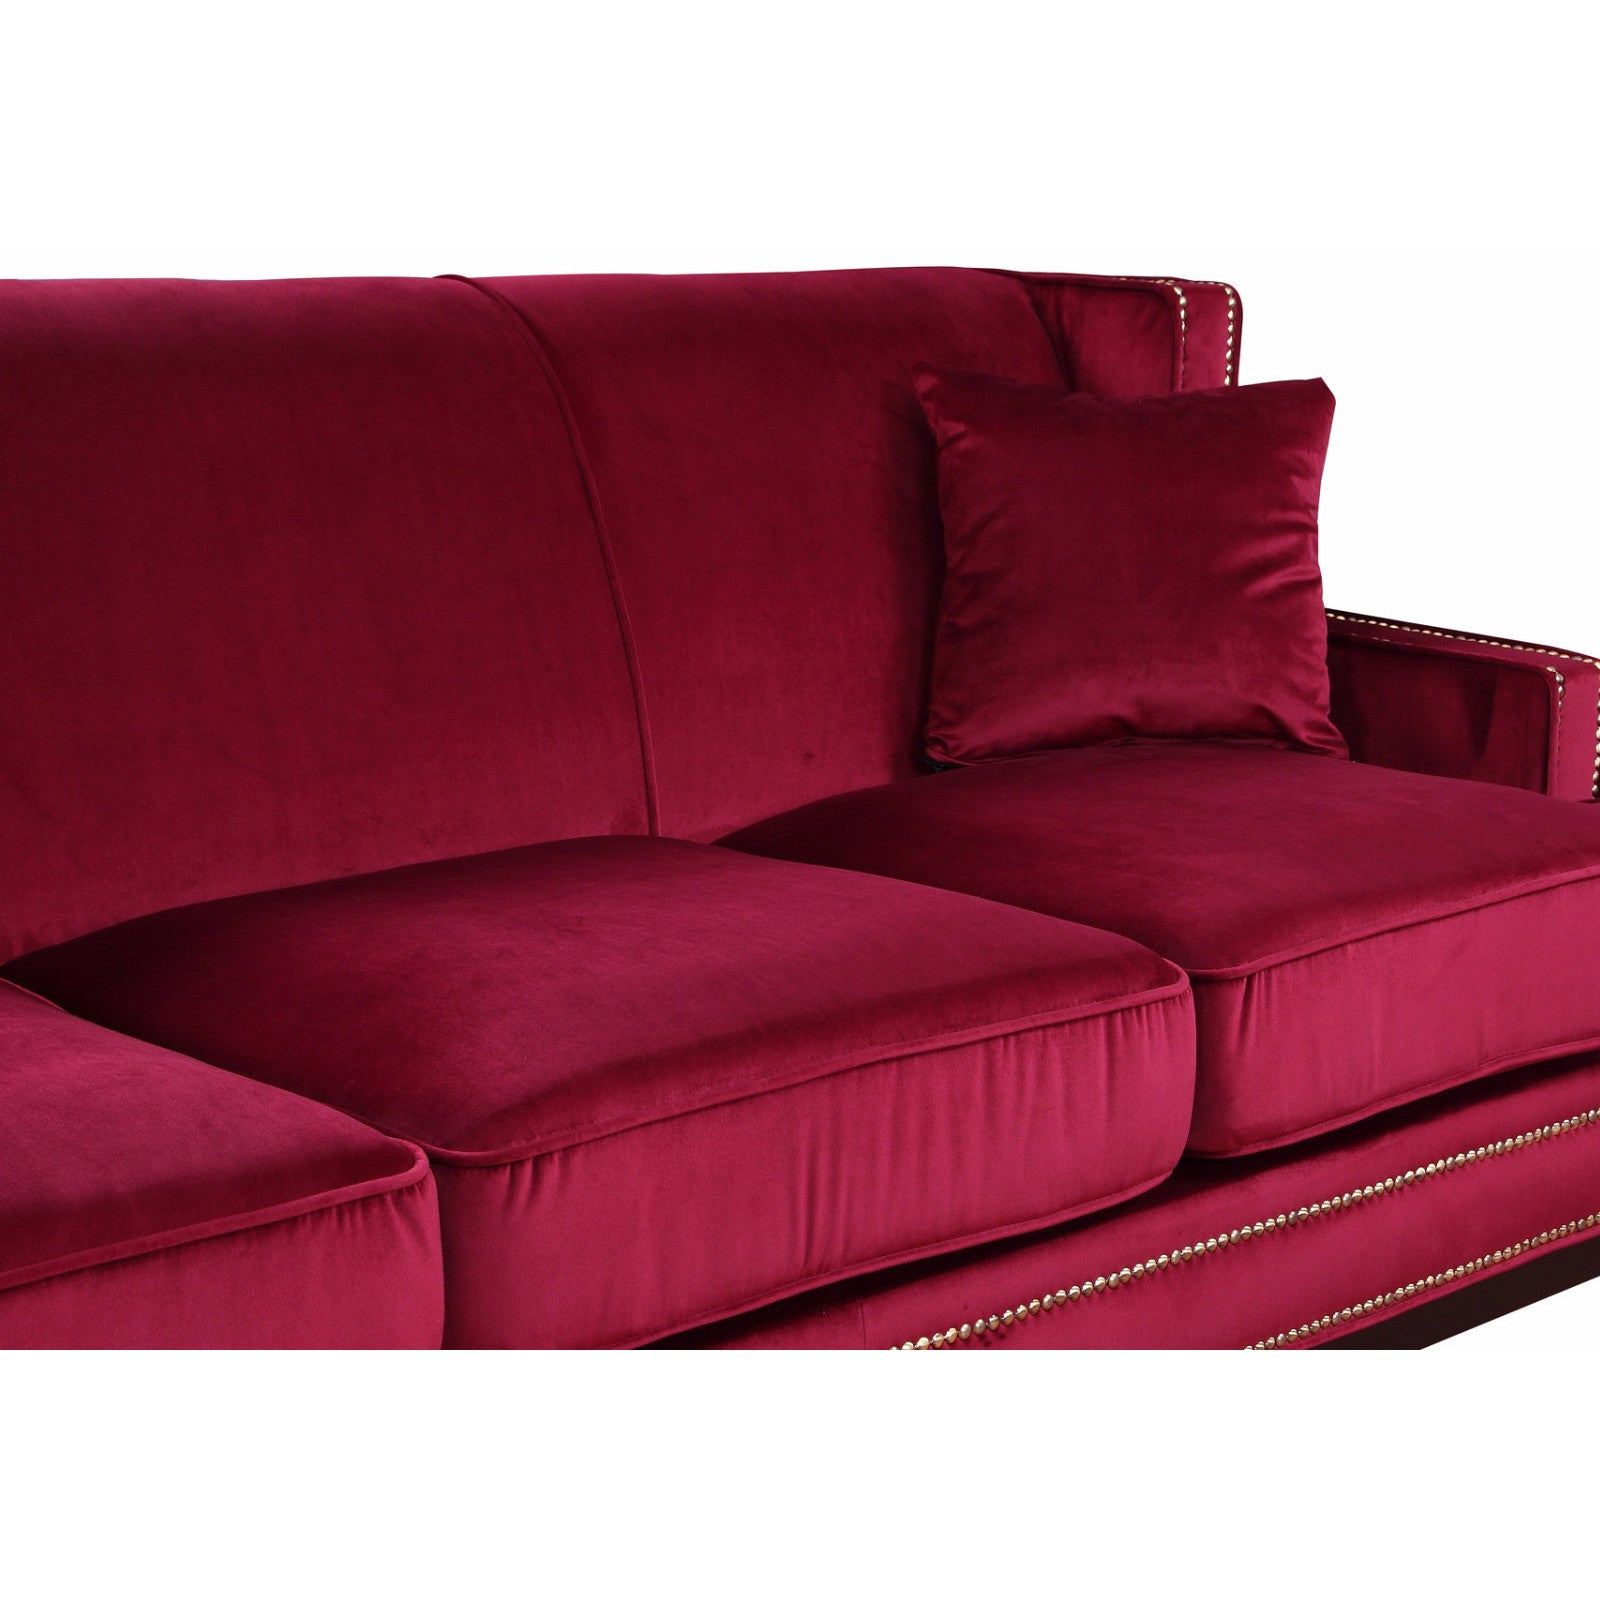 Shop Modern Soft Velvet Sofa With Nailhead Trim Details   Free Shipping  Today   Overstock.com   13232426